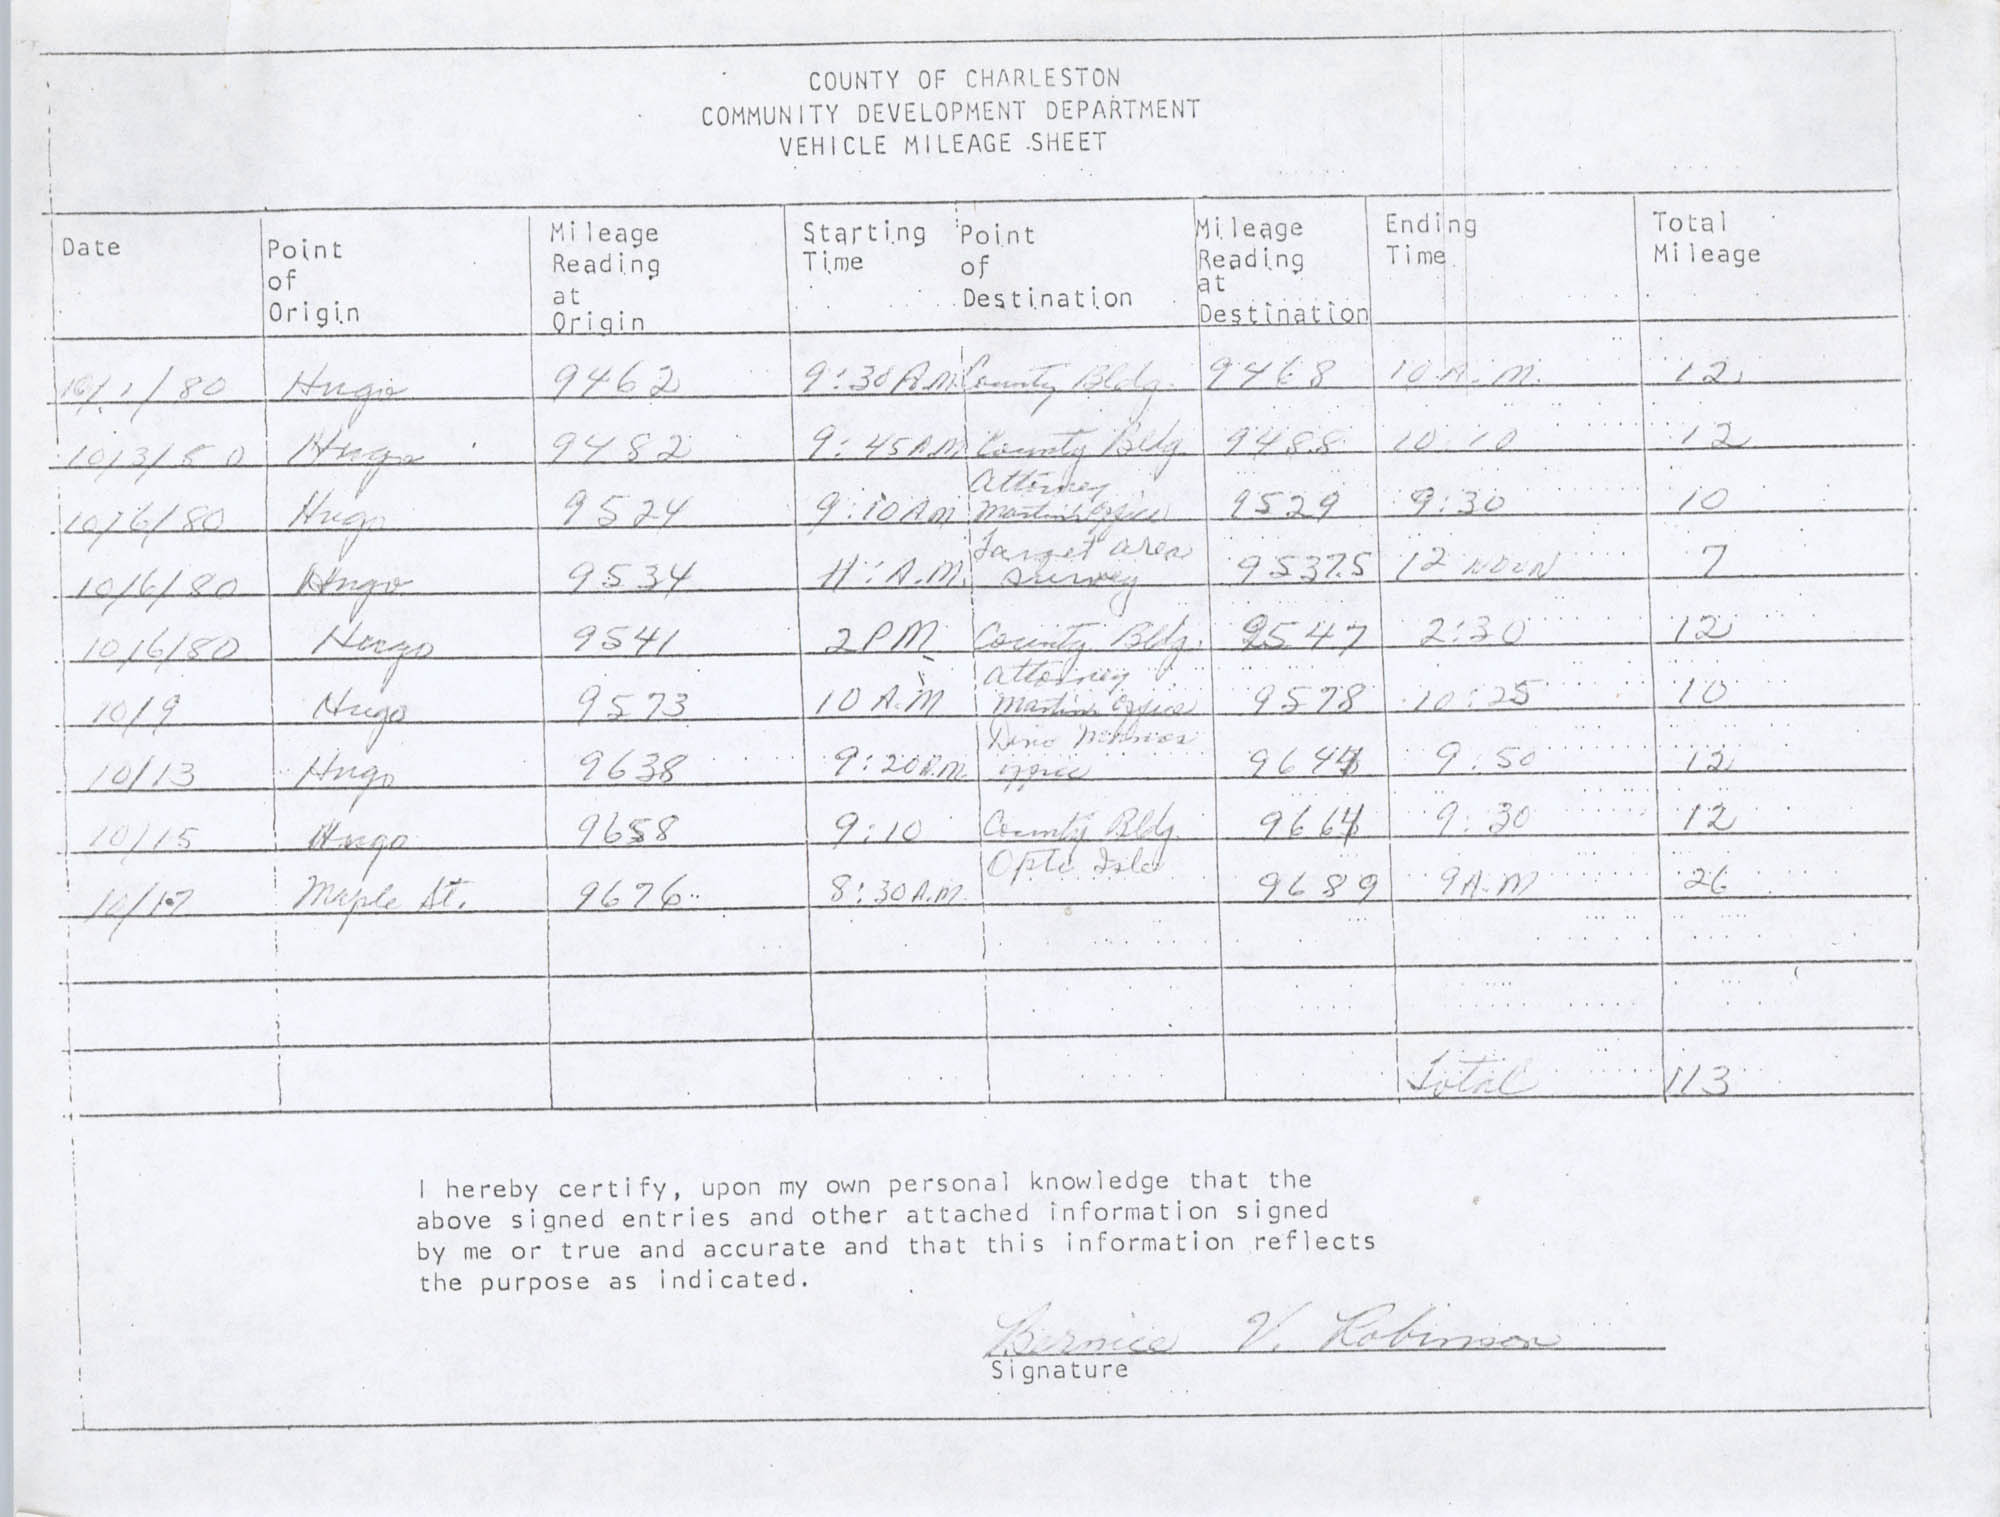 Community Development Department Vehicle Mileage Sheet, Page 22